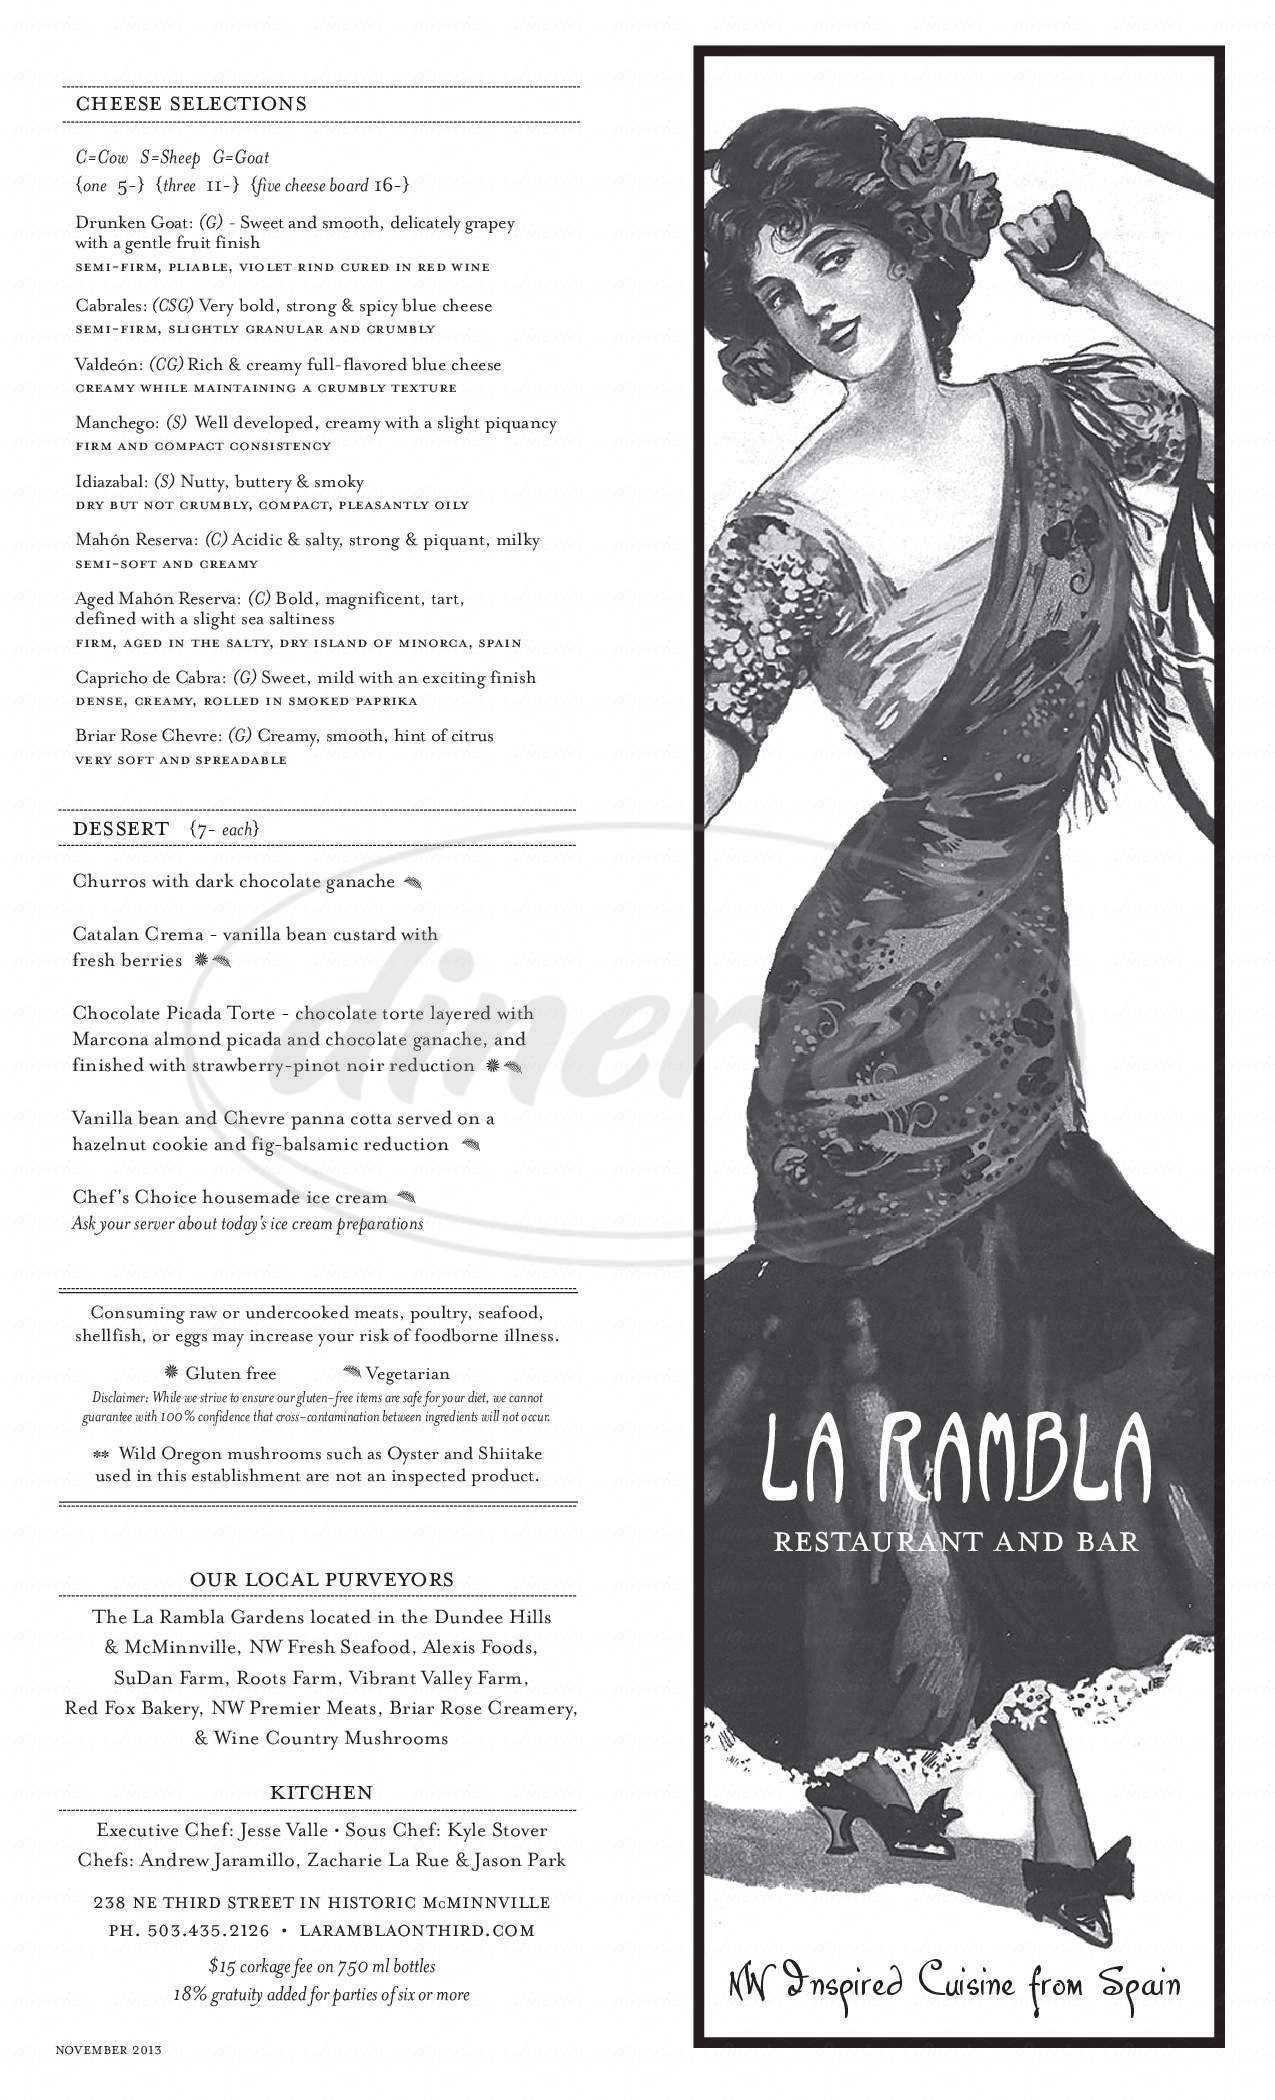 menu for La Rambla Restaurant & Bar